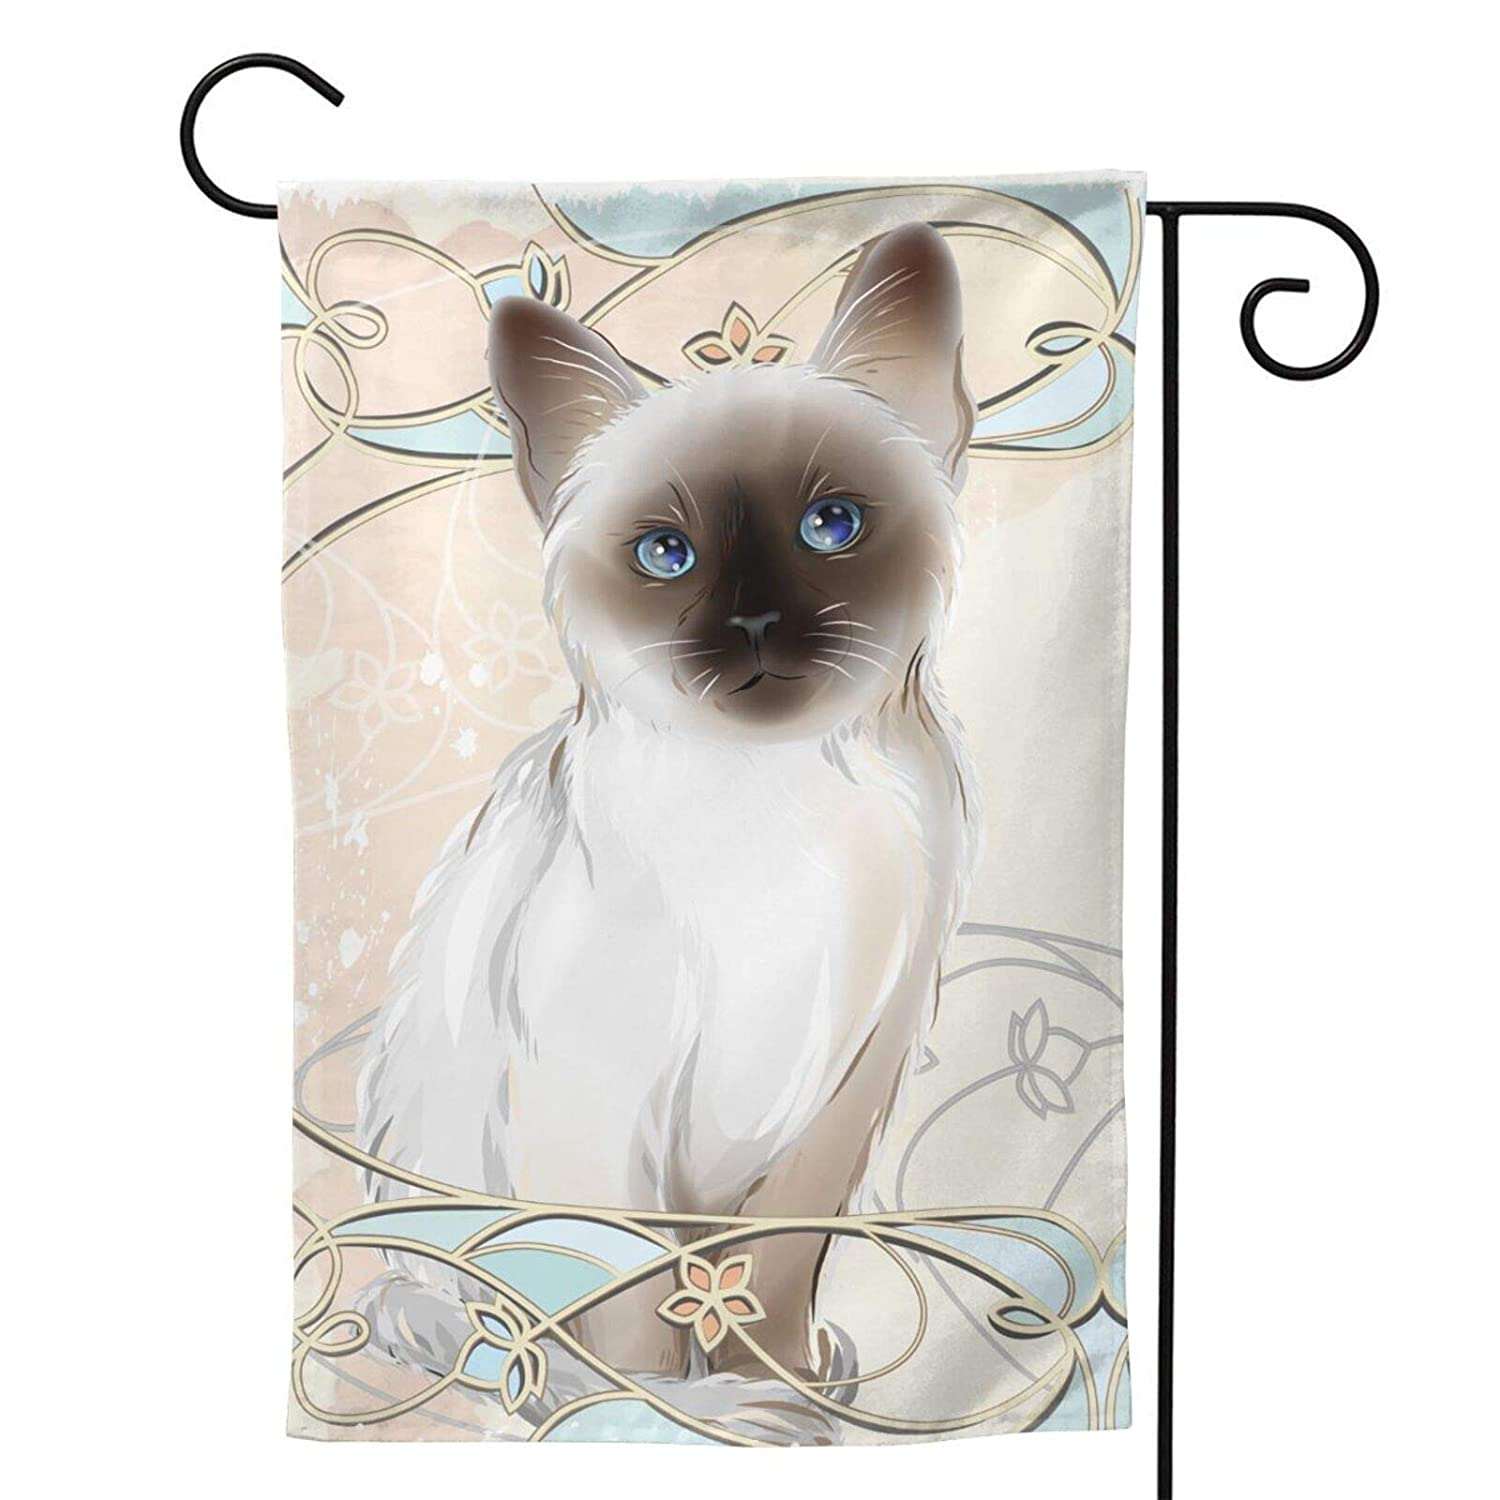 Siamese Cat Garden Flag Animal House Flag Vertical Double Sided Yard Outdoor Decor Party 12.5 X 18 Inch